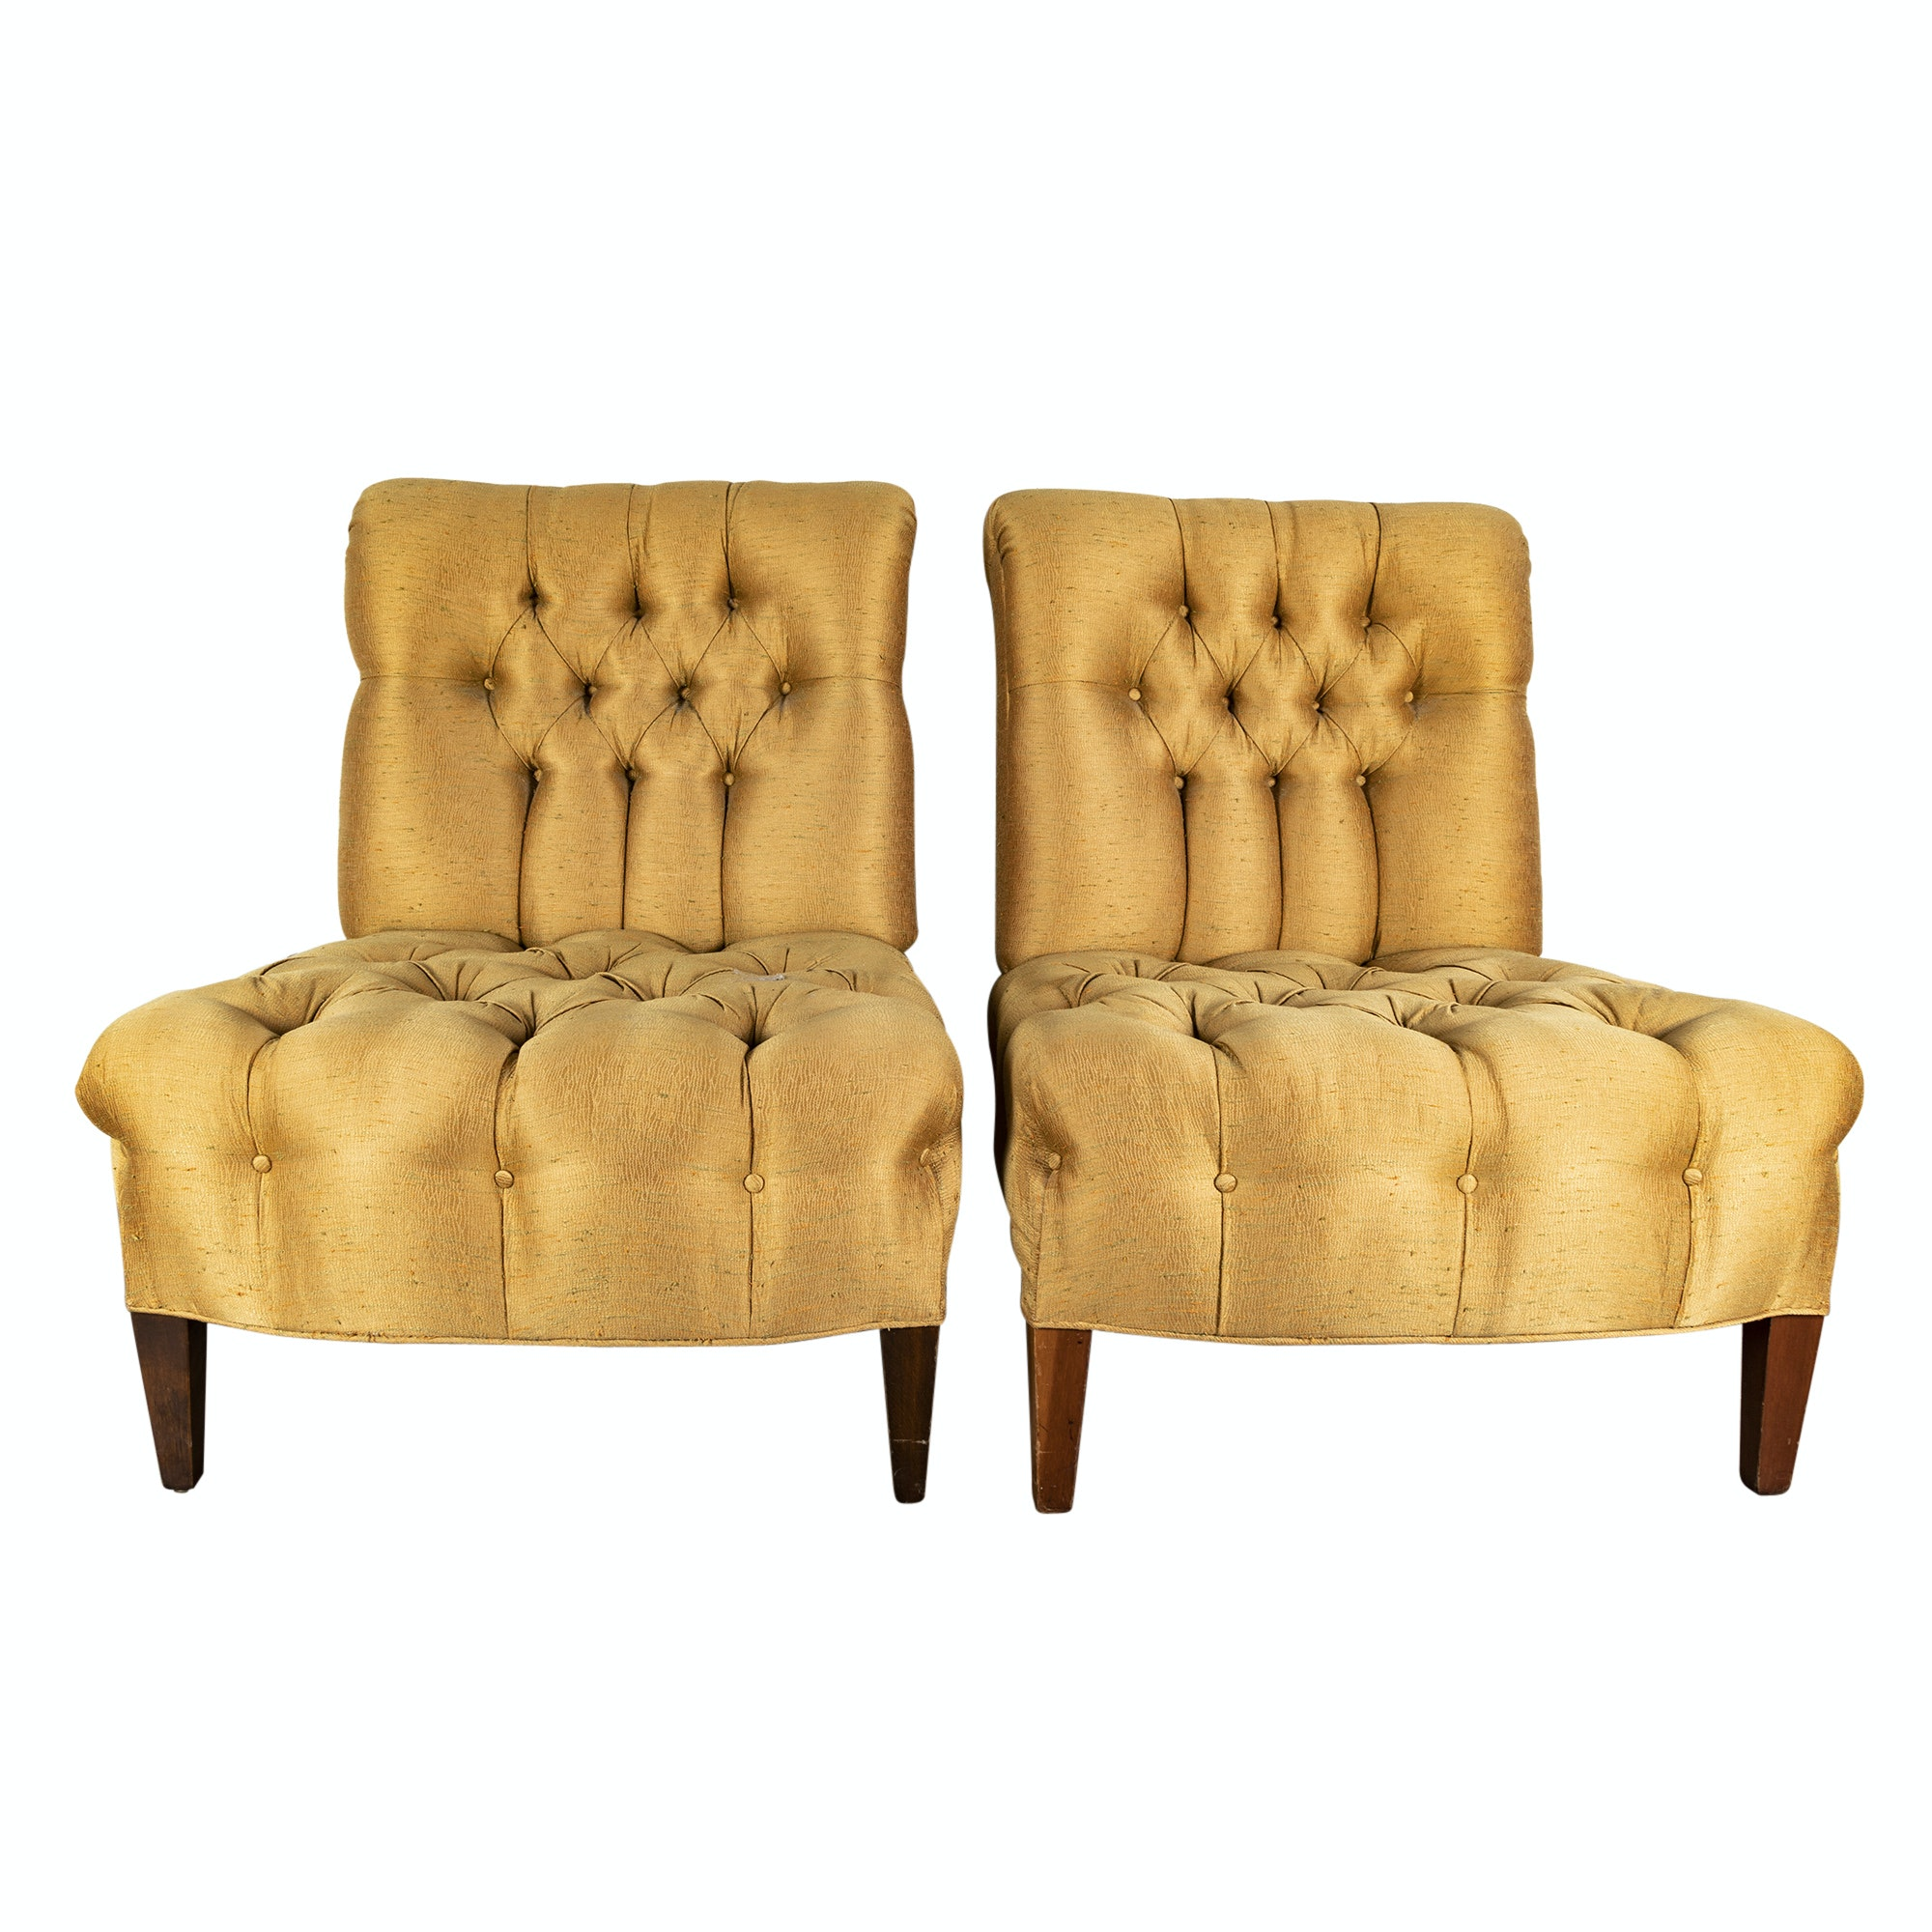 Upholstered Armless Lounge Chairs, 20th Century